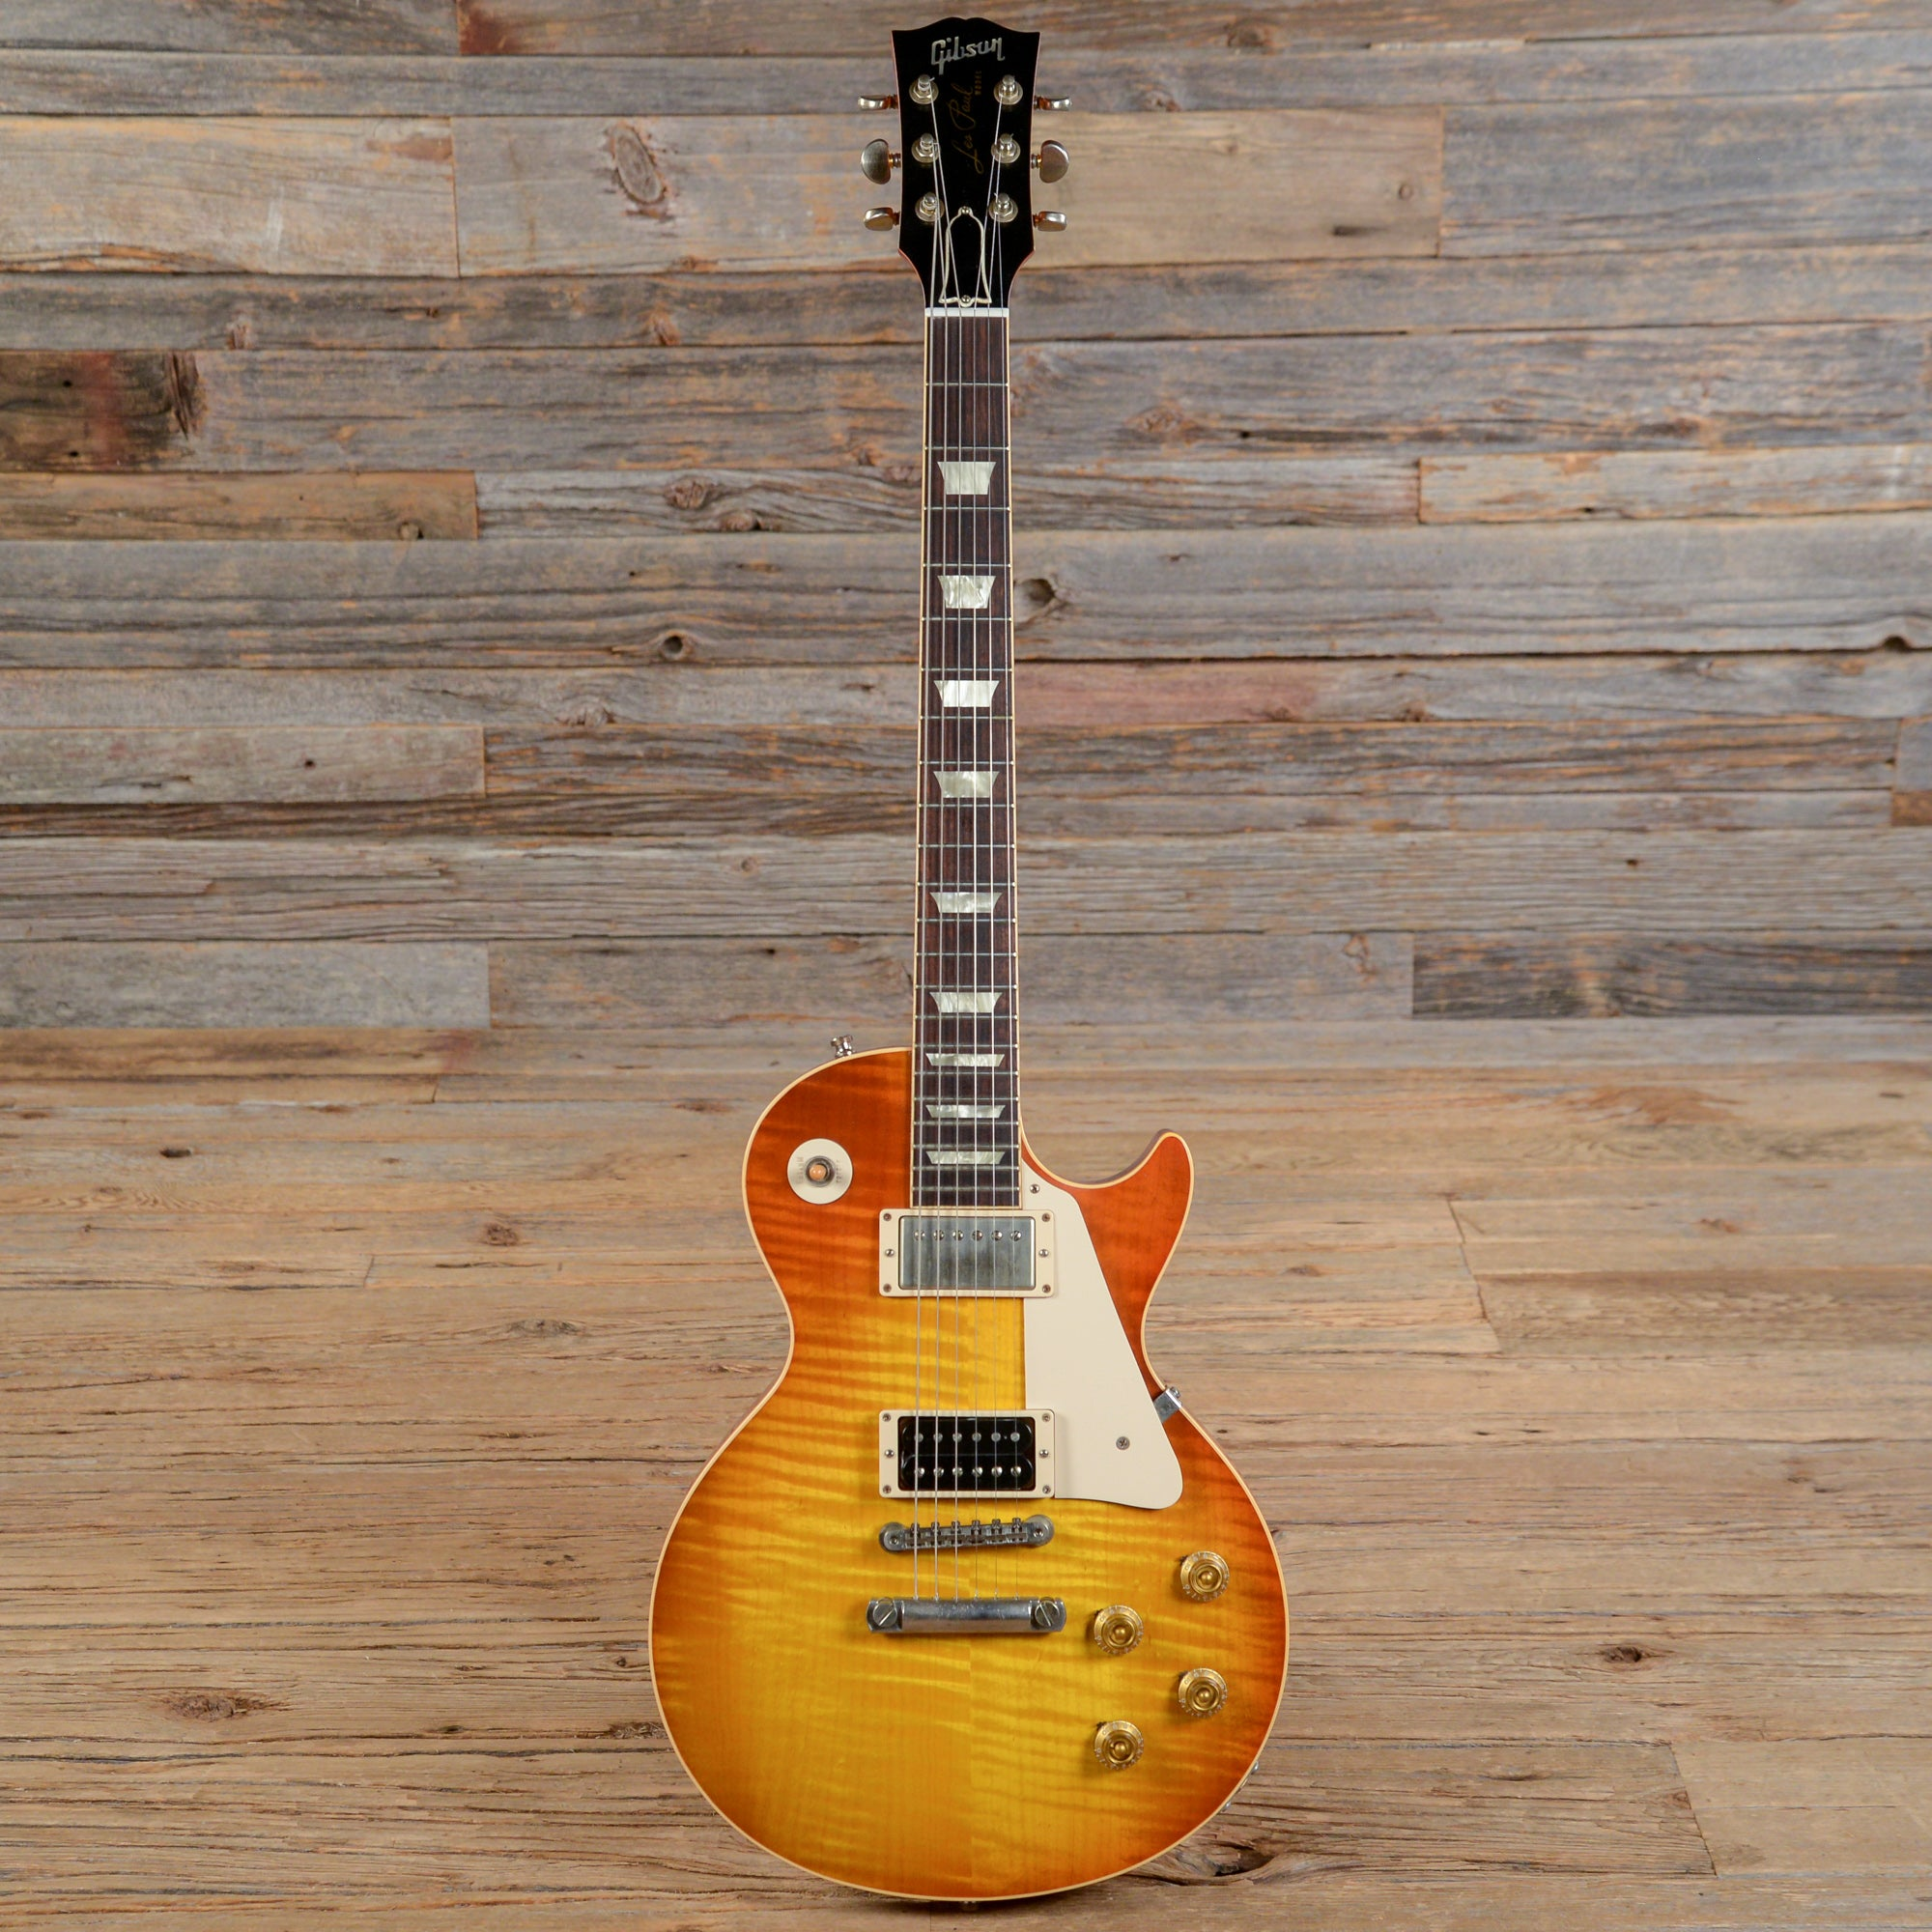 Gibson custom shop les paul jimmy page custom authentic for Jimmy page les paul color